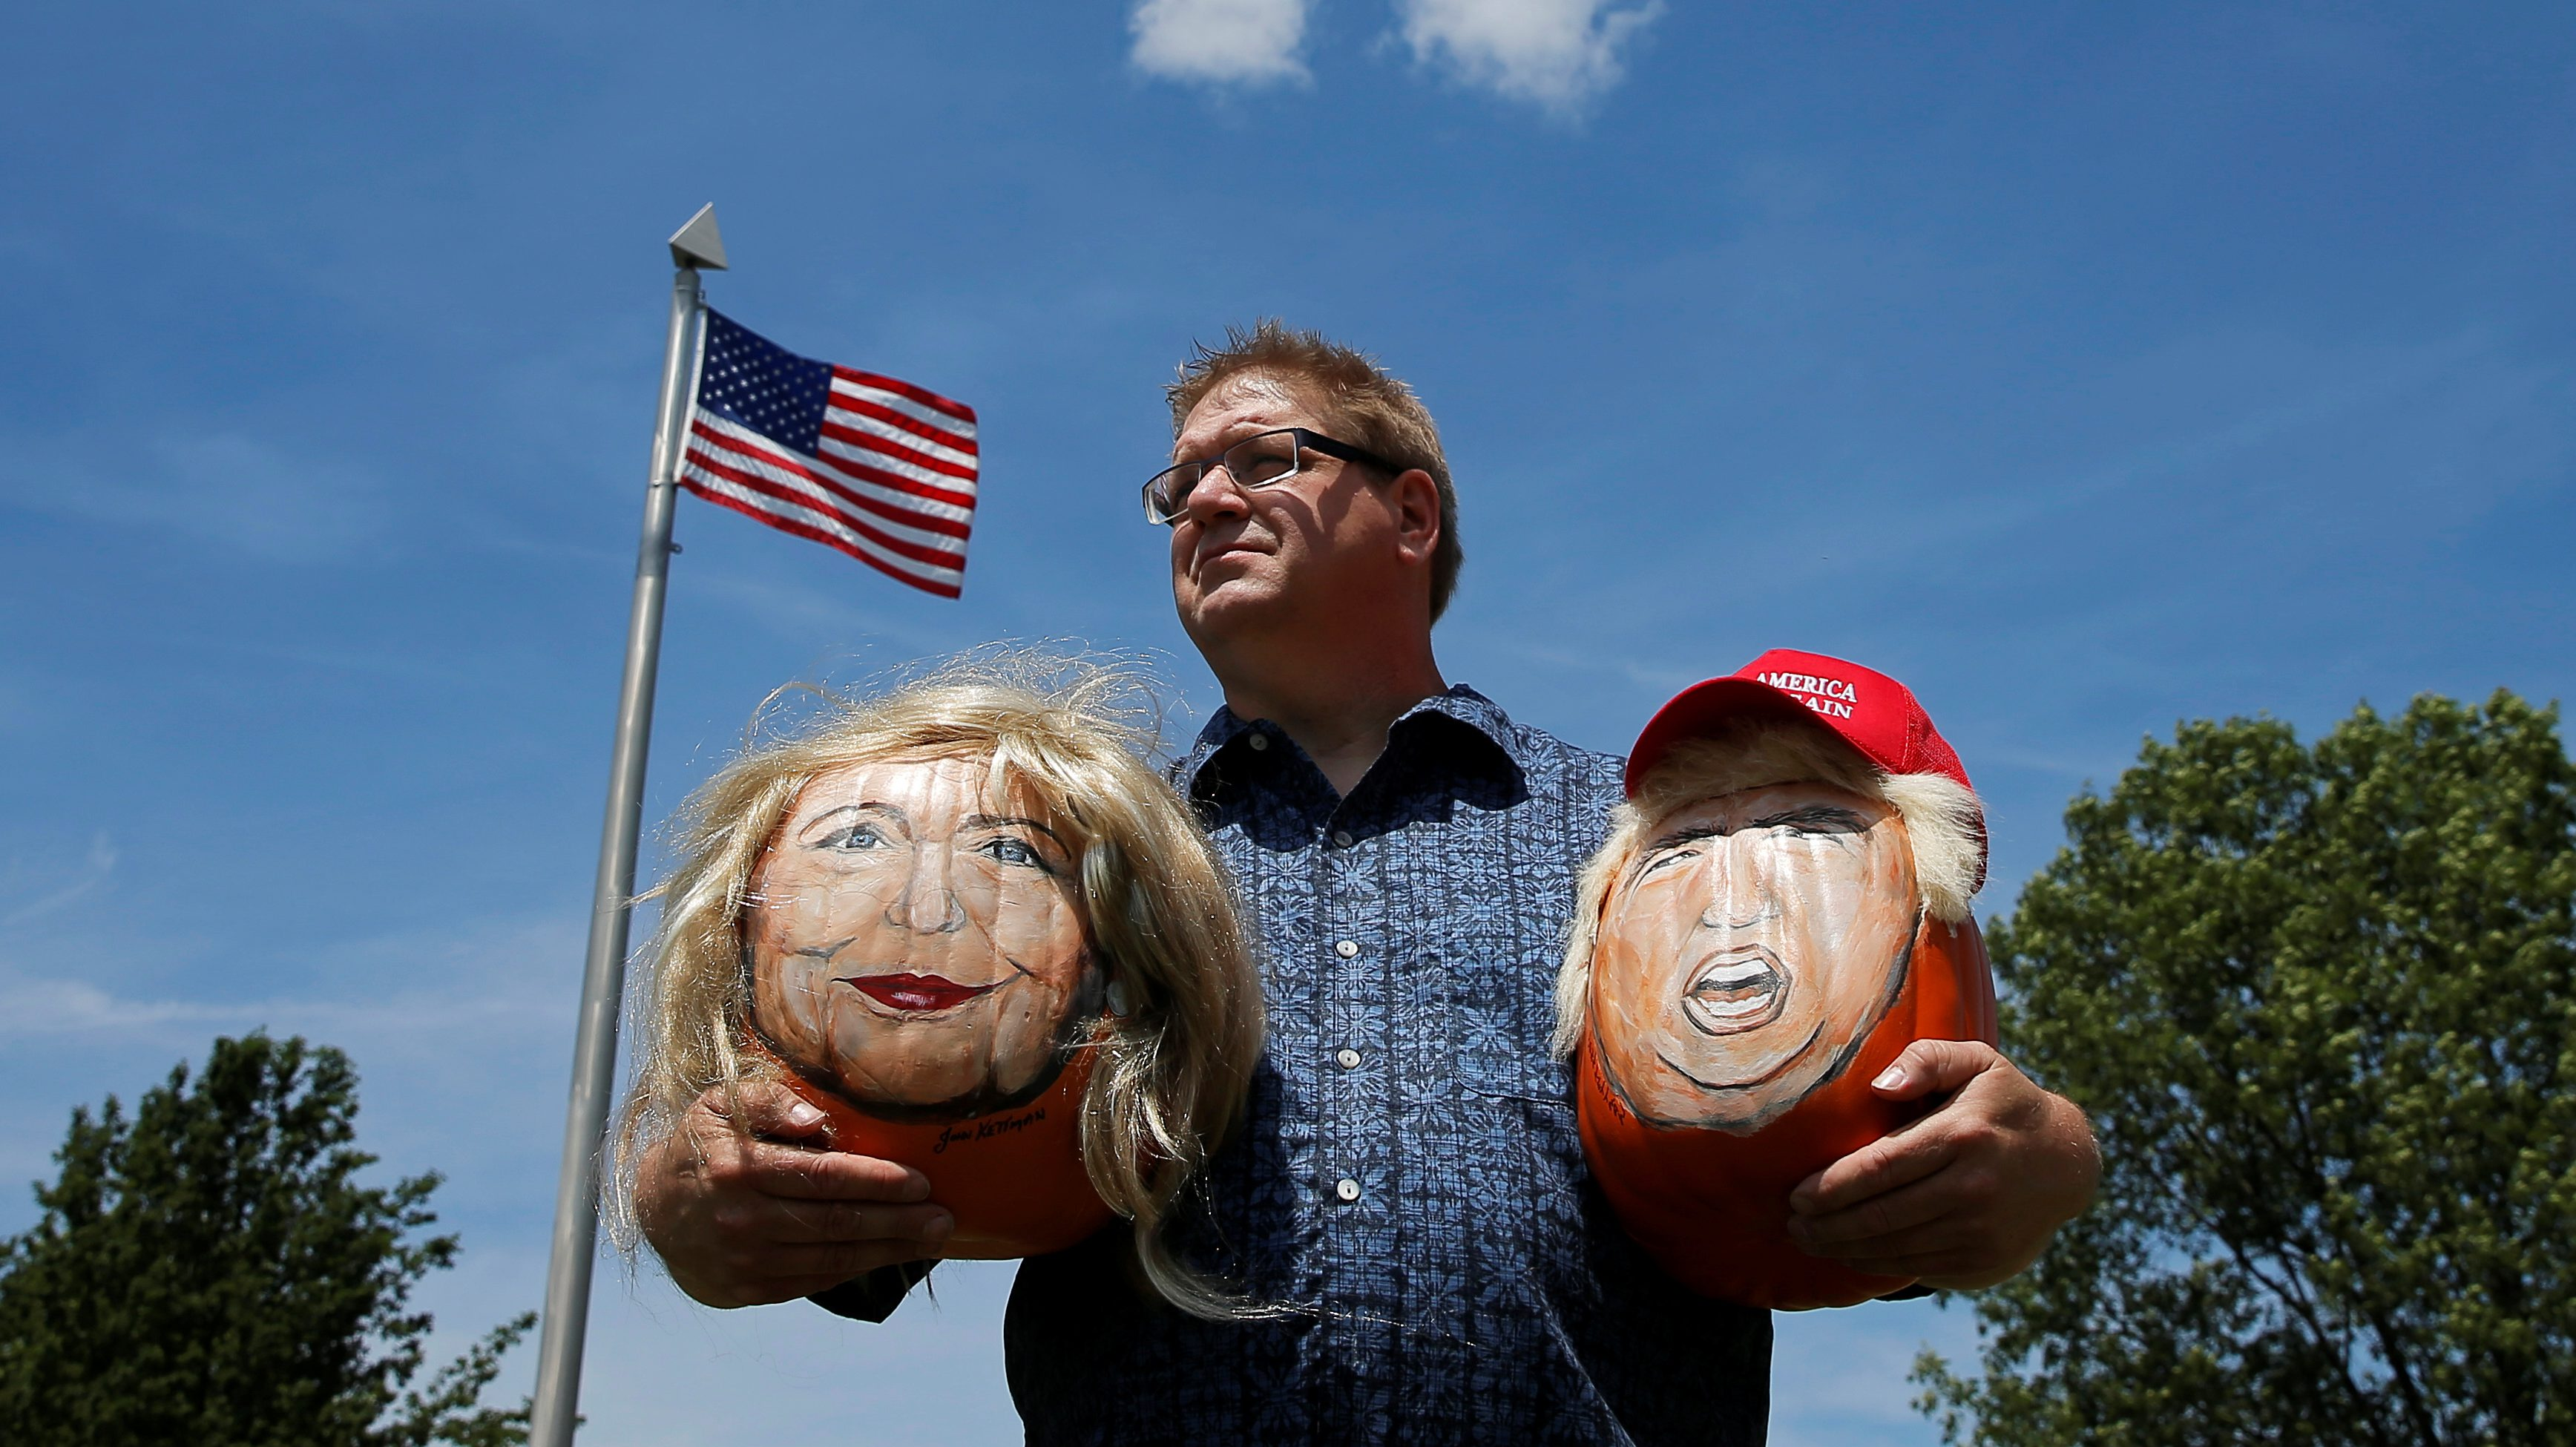 Artist John Kettman poses with decorative pumpkins he created with the painted images of U.S. Democratic presidential candidate Hillary Clinton and Republican Presidential candidate Donald Trump in LaSalle, Illinois, U.S., June 8, 2016.     REUTERS/Jim Young  - RTSGMWH